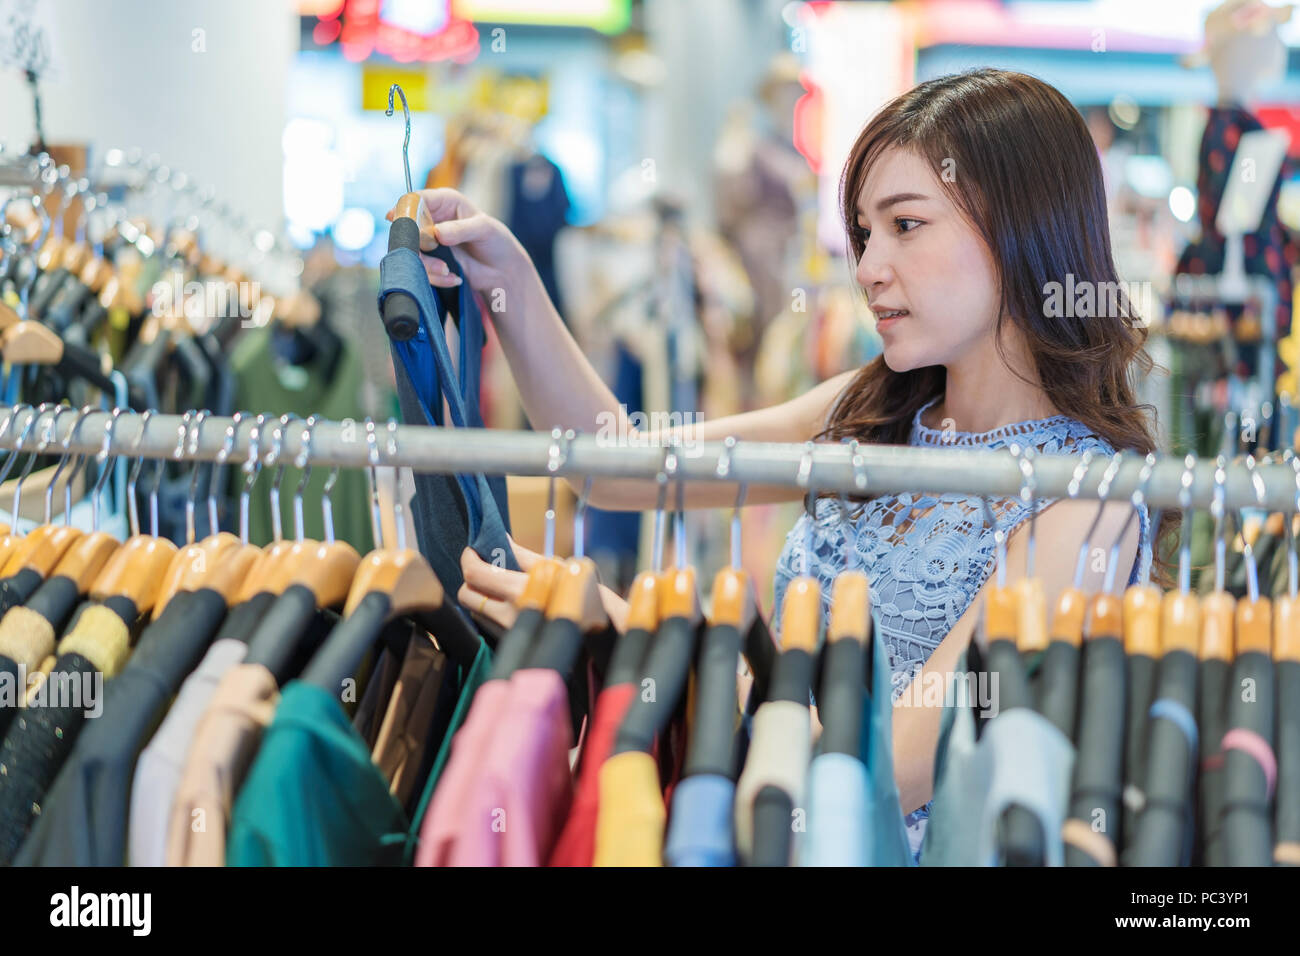 154cf075be80c young woman shopping in a clothing store Stock Photo: 213987929 - Alamy